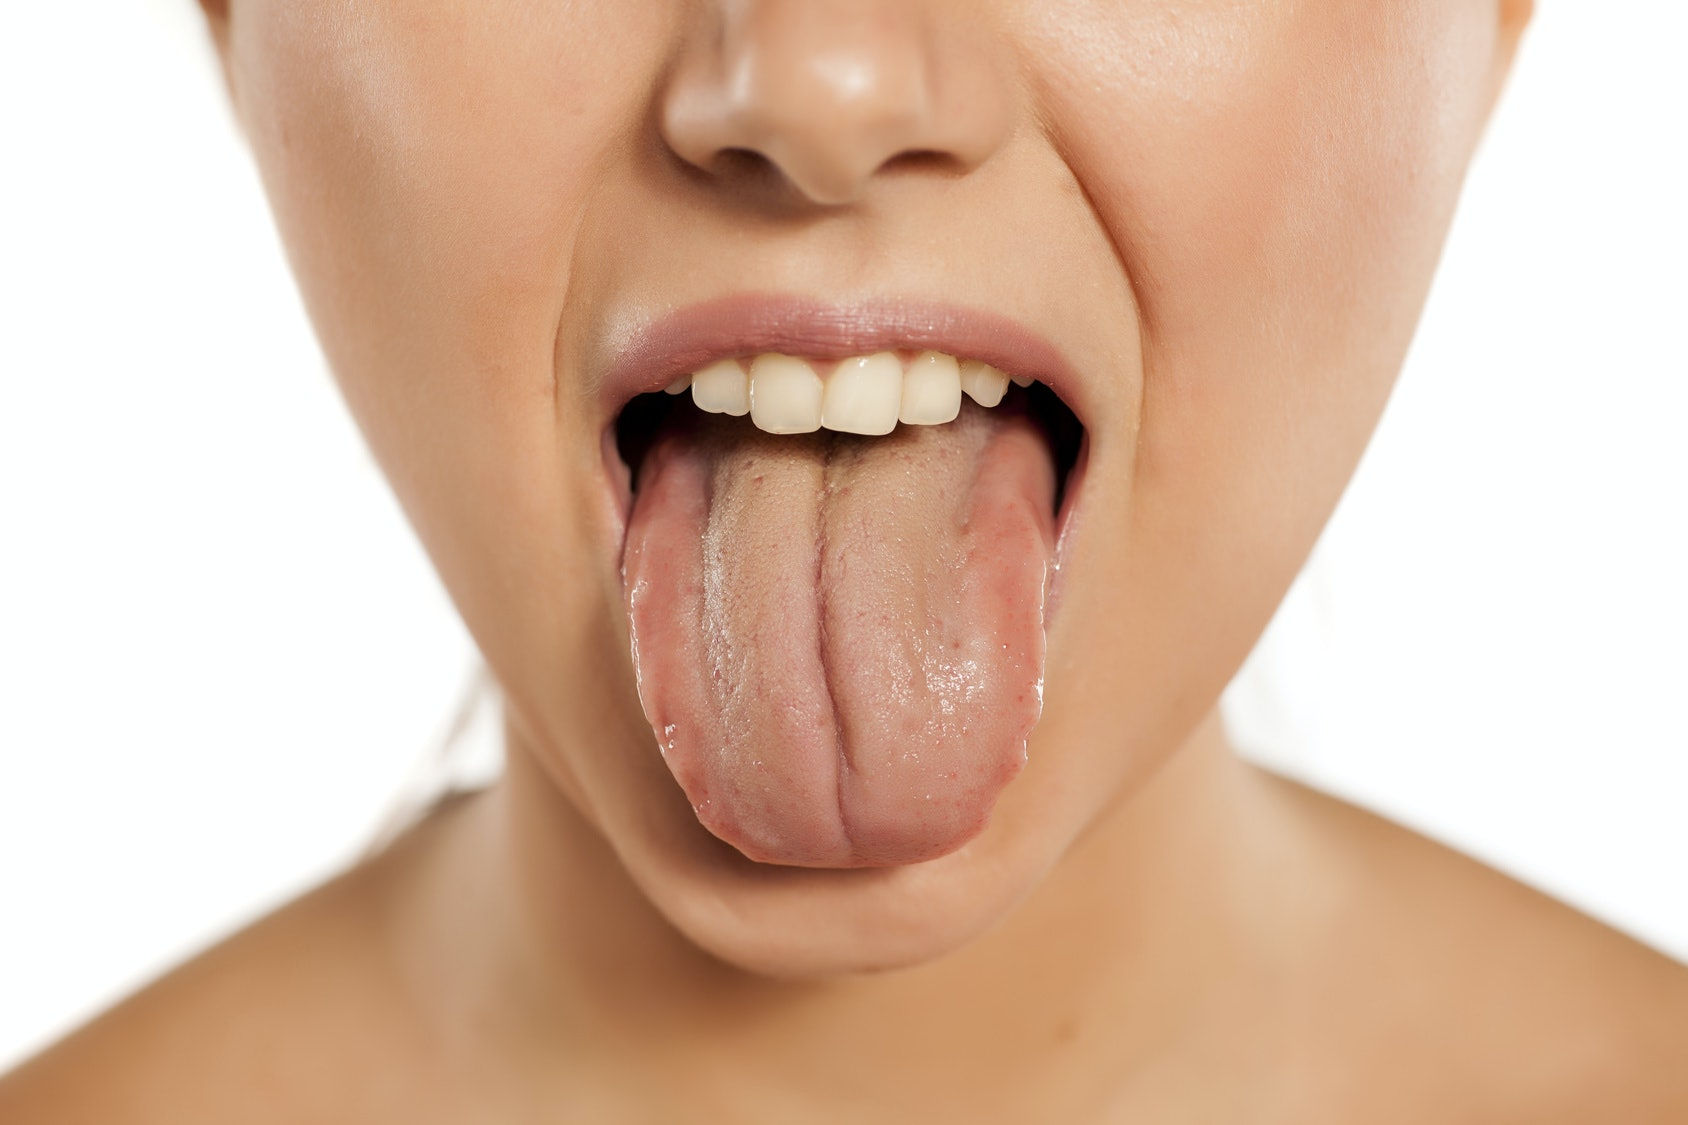 10 Things Your Tongue Can Tell You About Your Health, Based